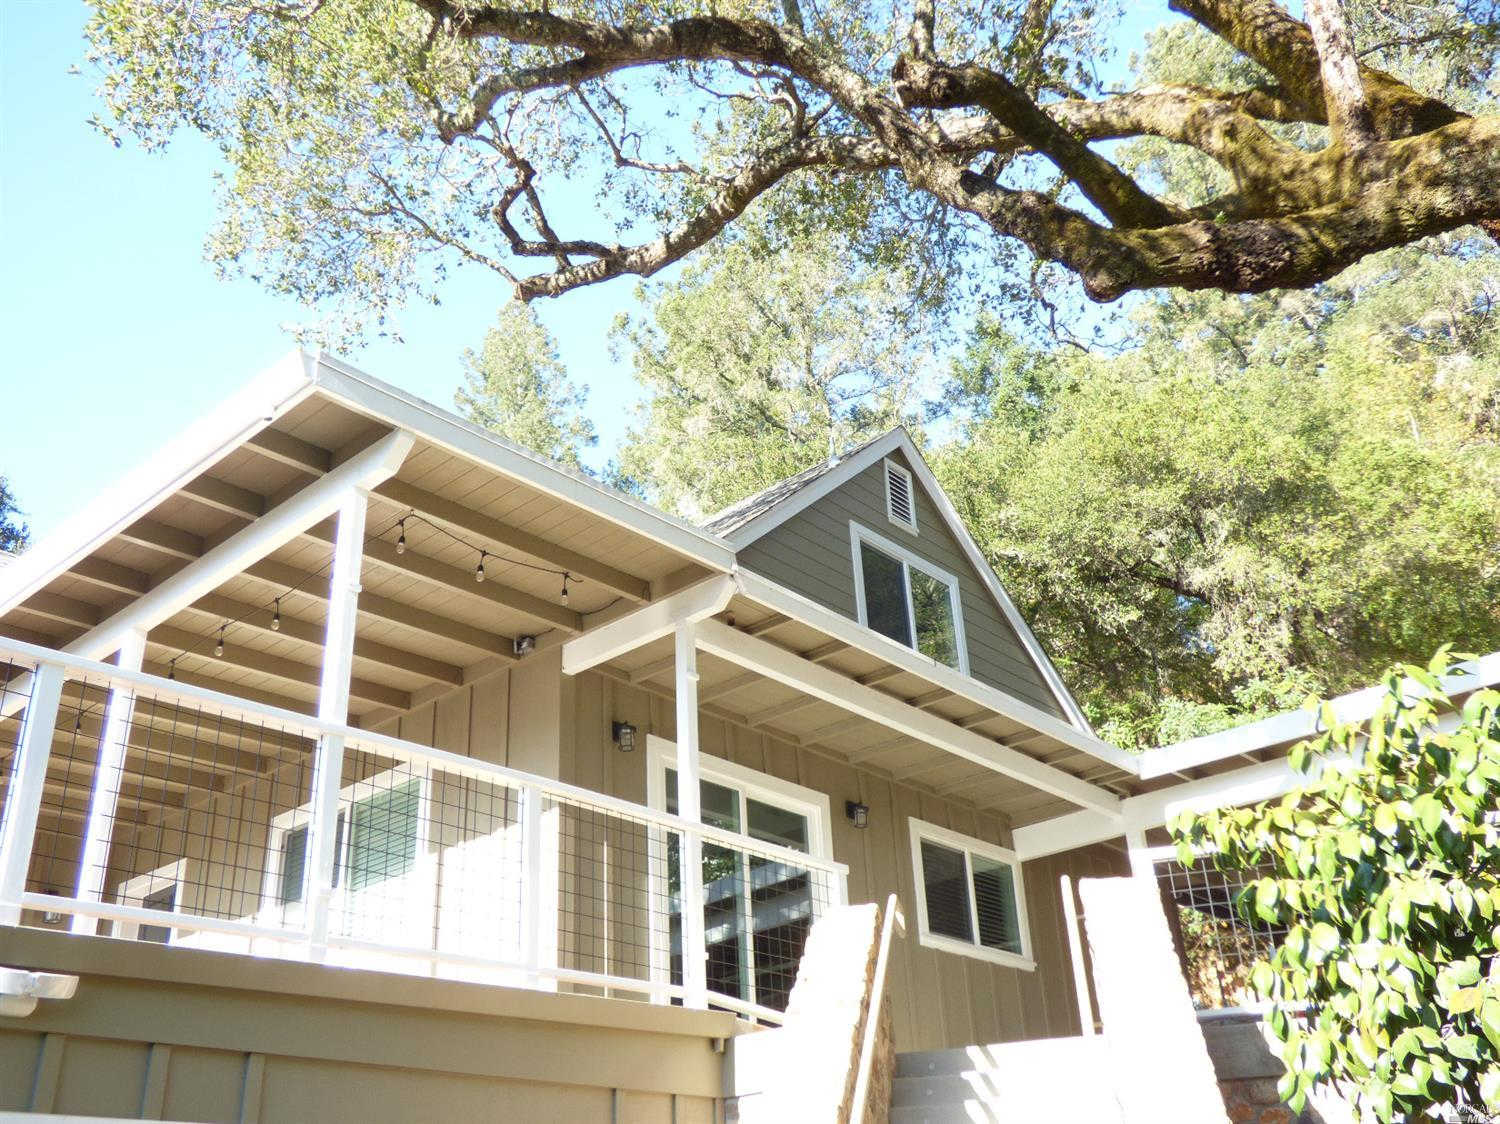 680 Crystal Springs Road #1, St. Helena, CA 94574 now has a new price of $3,950!